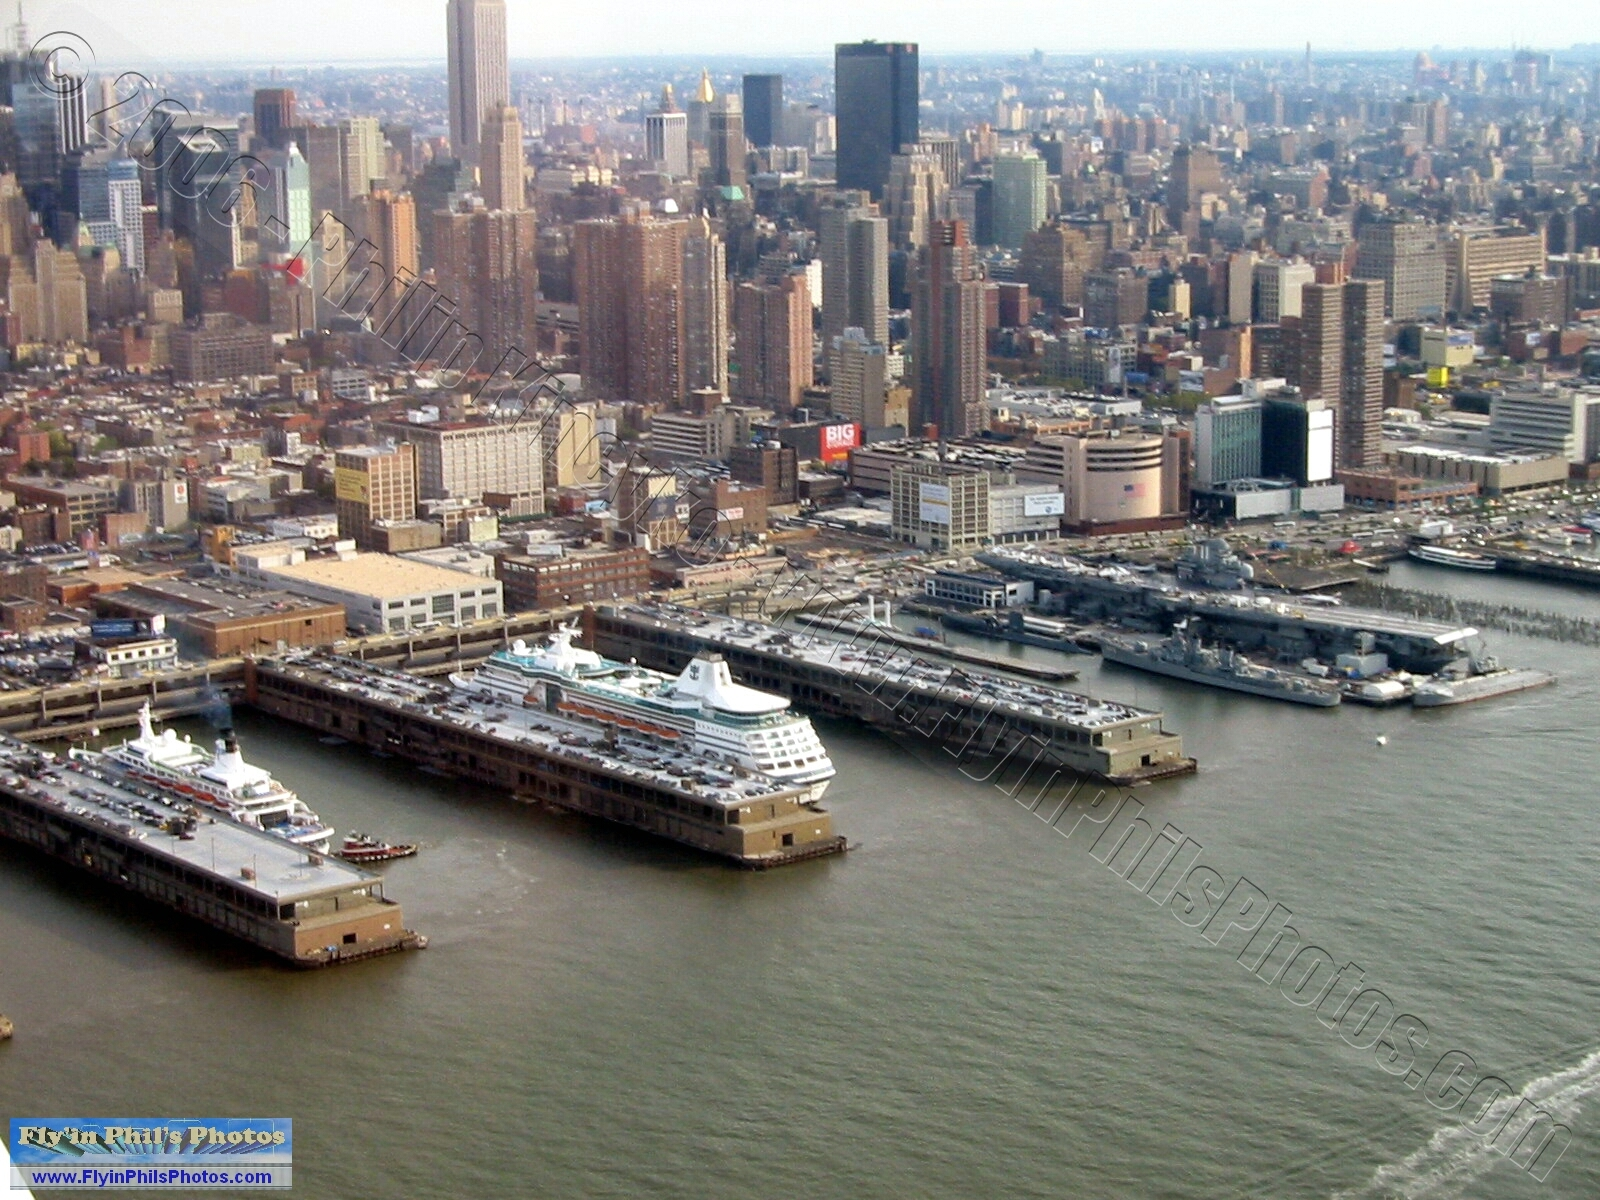 Fly39in Phil39s Photos  New York City Aerial Photo SEARCH Page